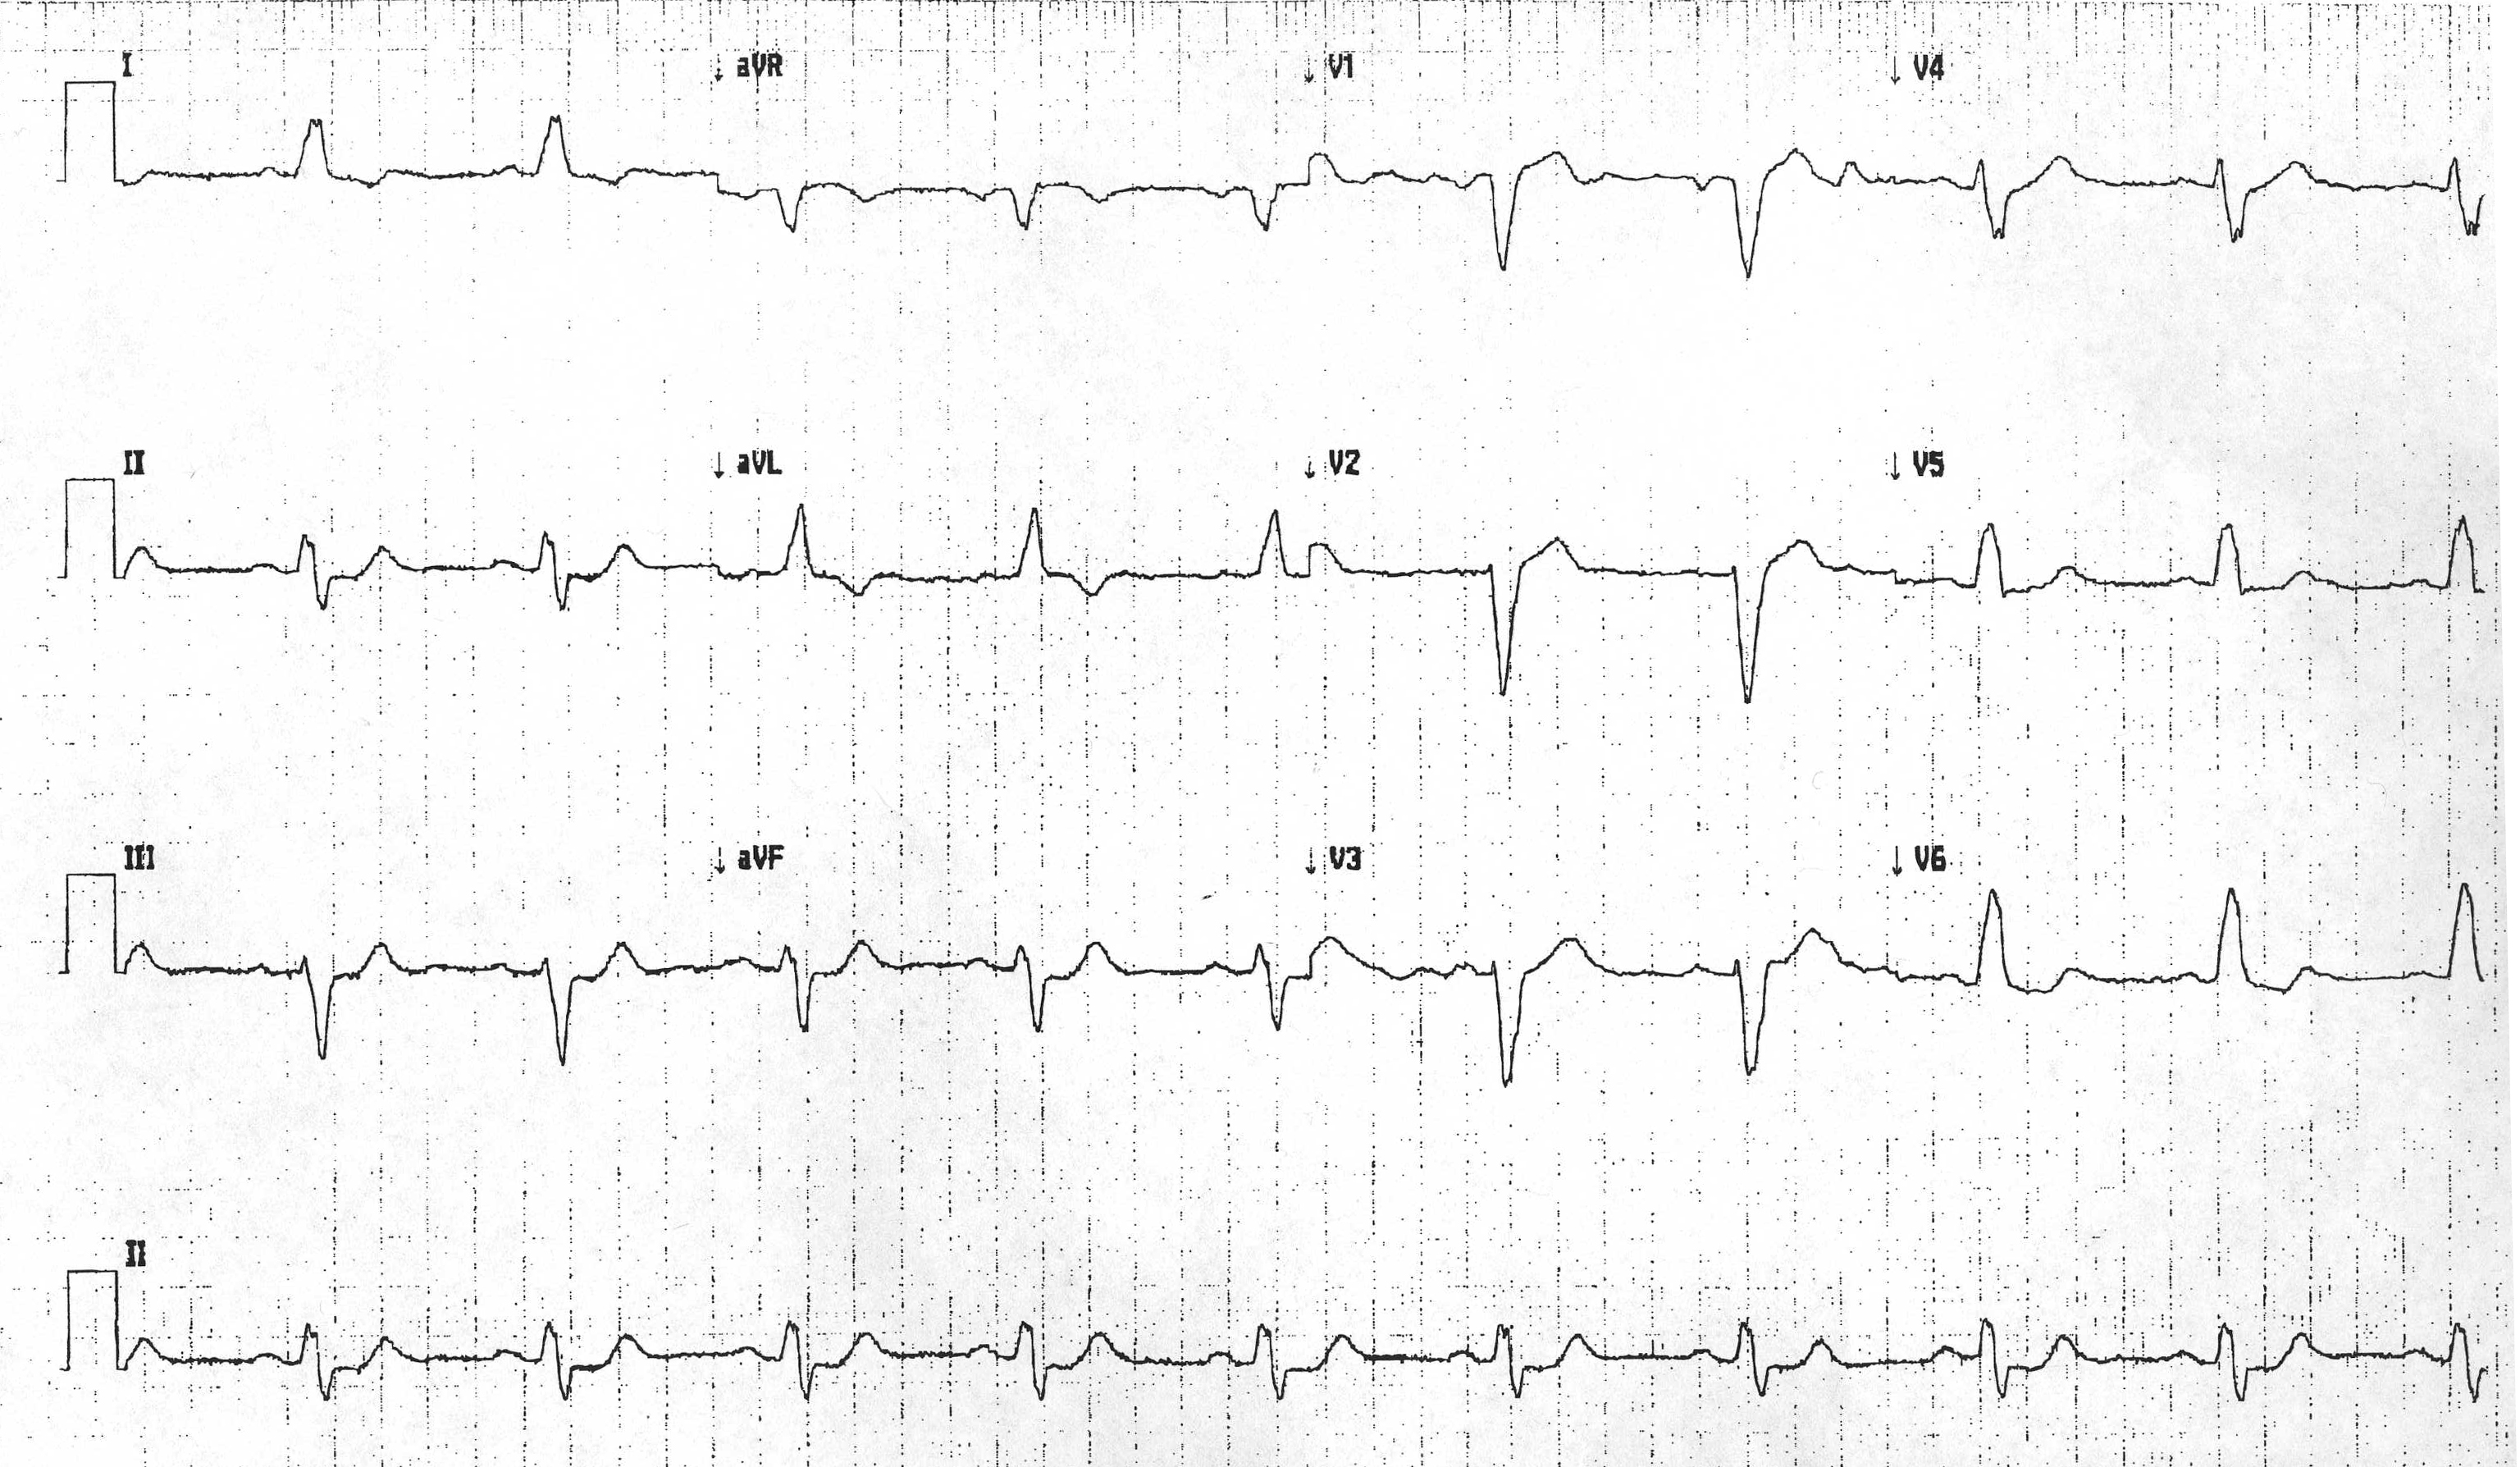 LBBB with pseudonormalization of T waves.jpg